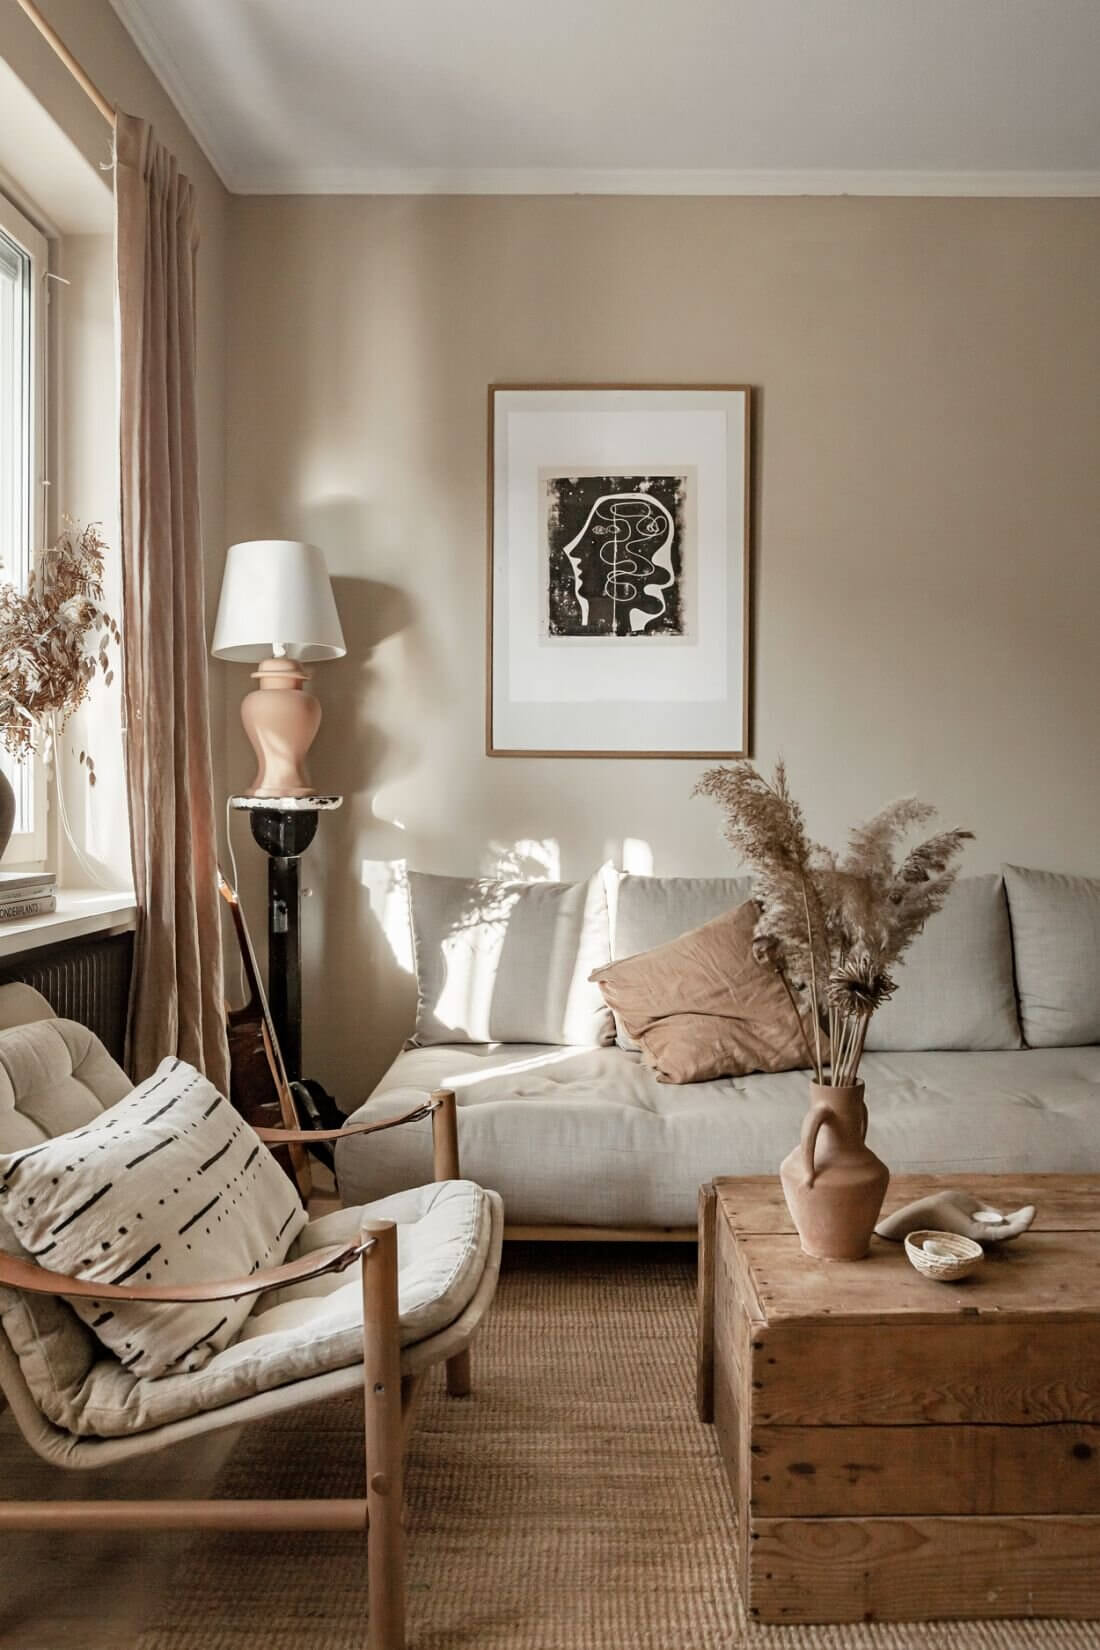 Earthy Tones and Natural Materials in a Scandi Apartment